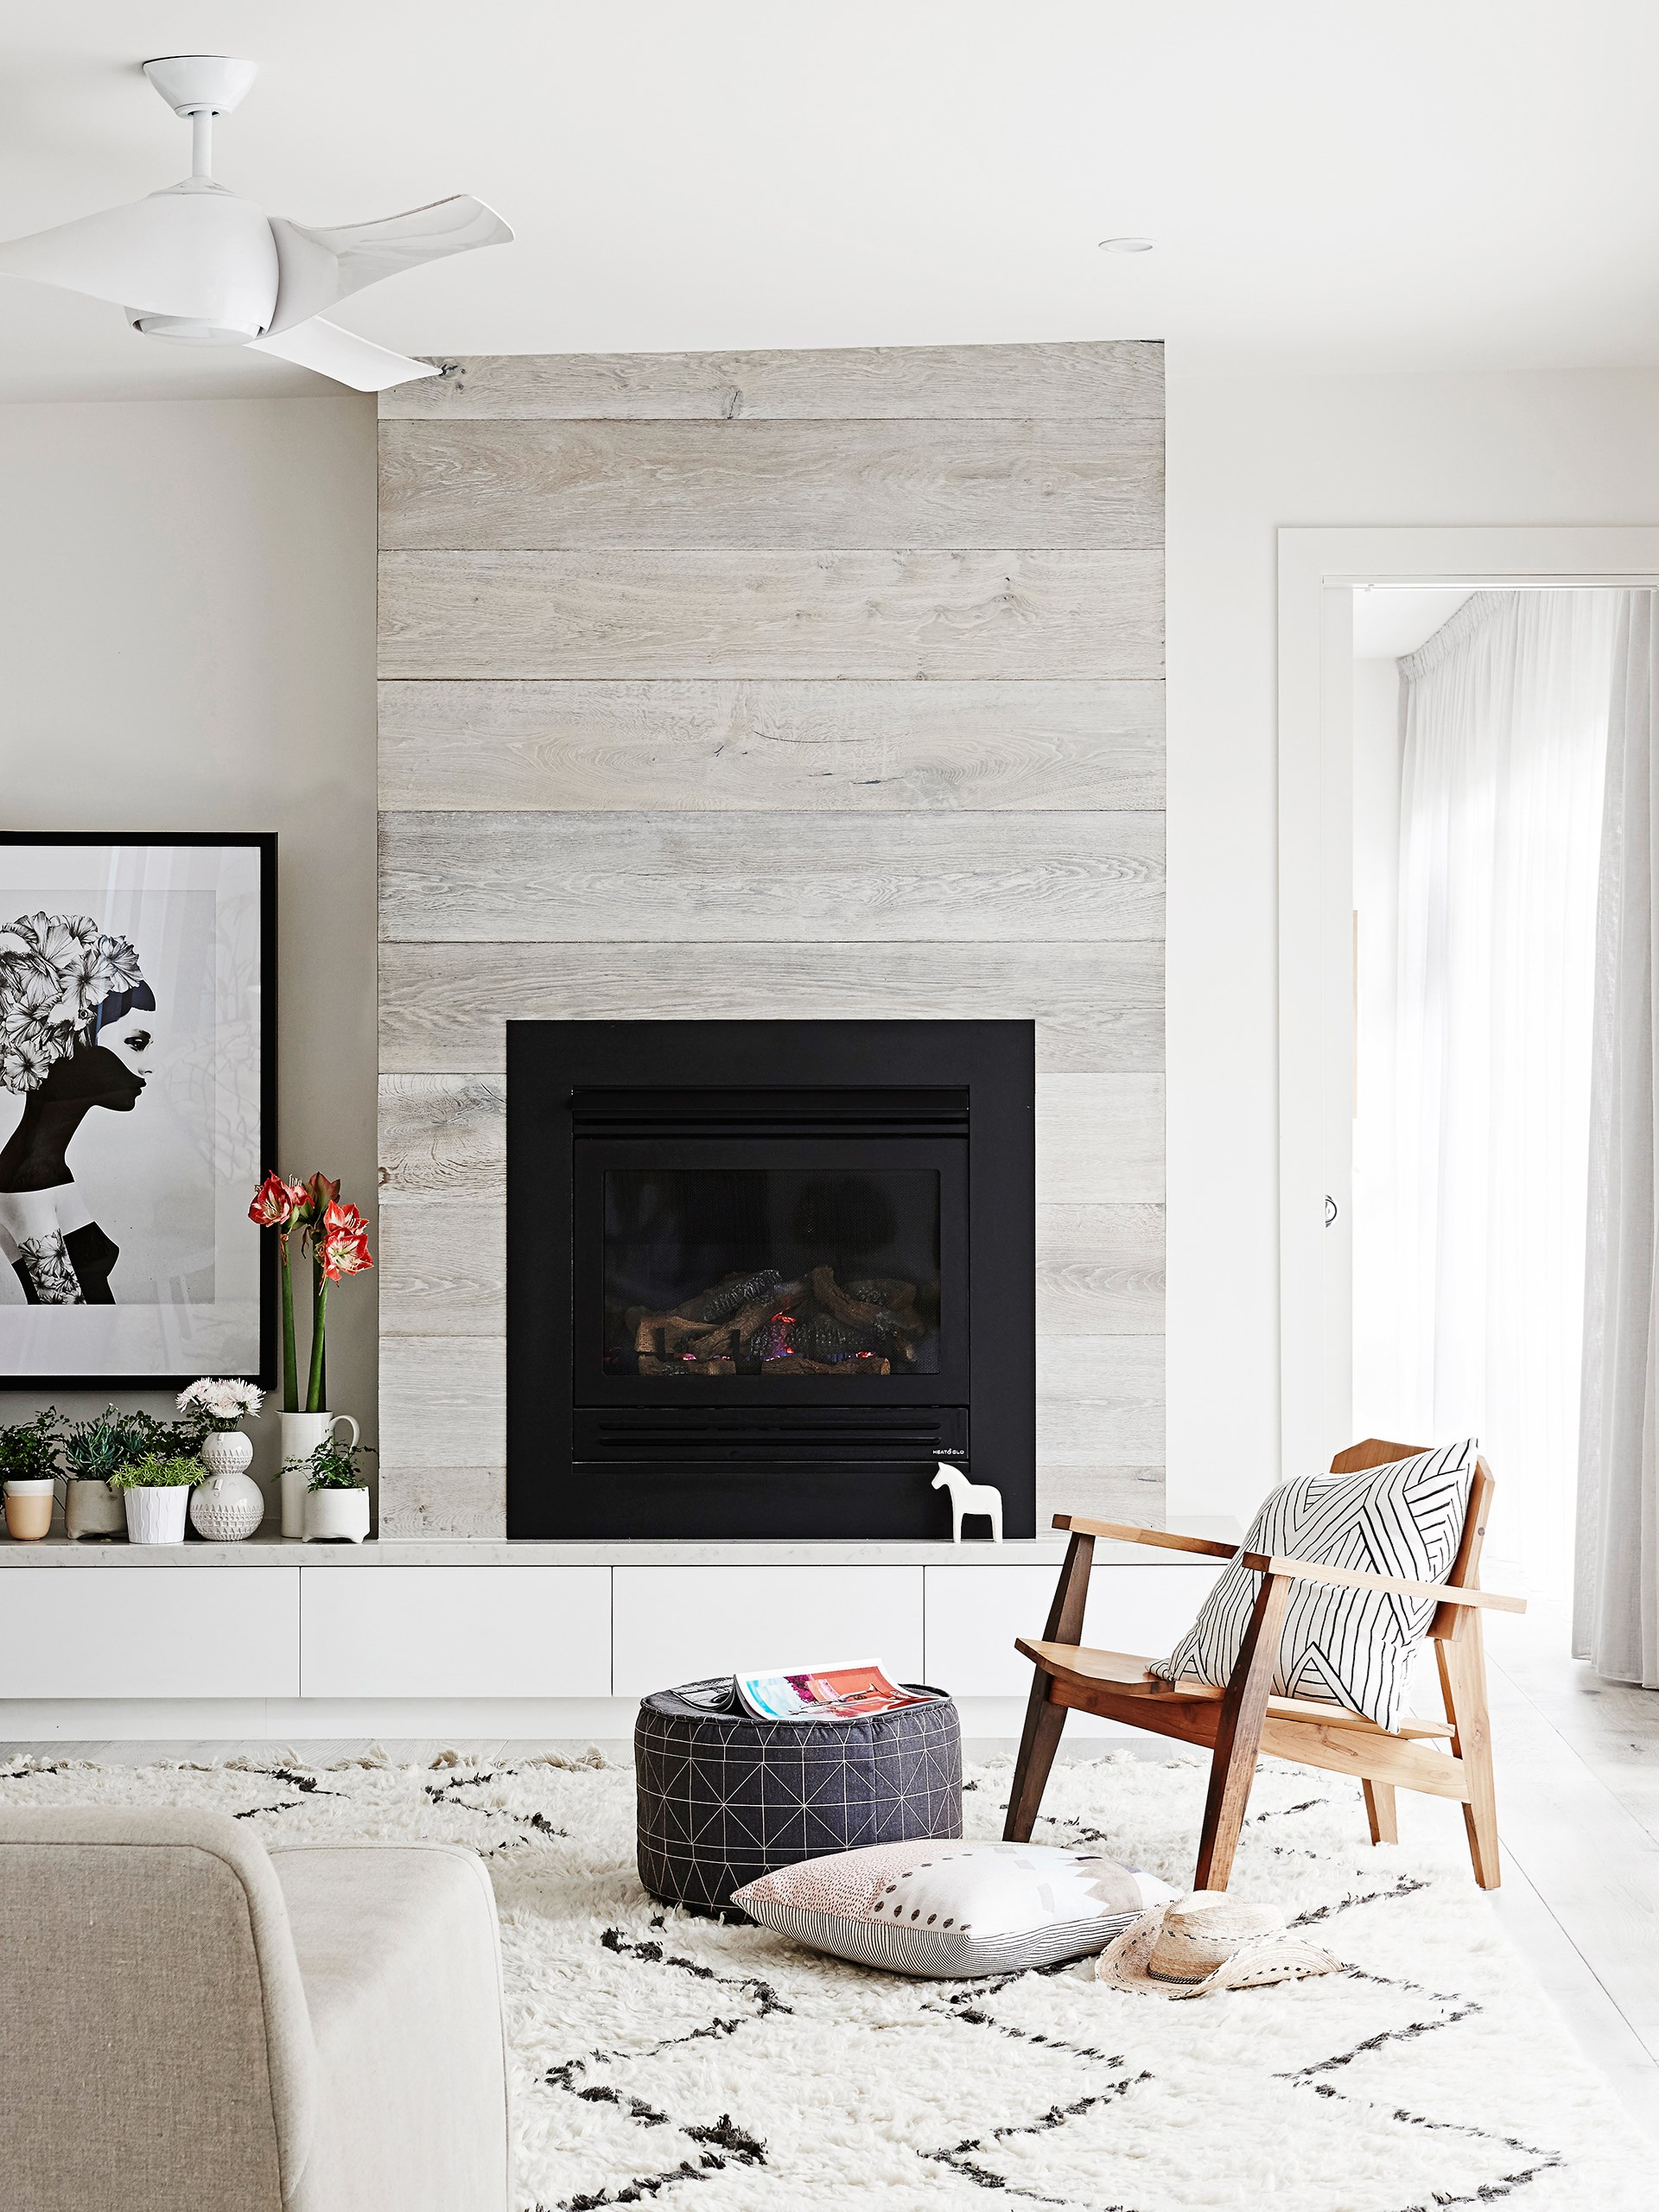 "[Discover eight stylish ways to warm your home for winter here >](http://www.homestolove.com.au/8-stylish-ways-to-warm-up-the-home-for-winter-3377|target=""_blank"")"